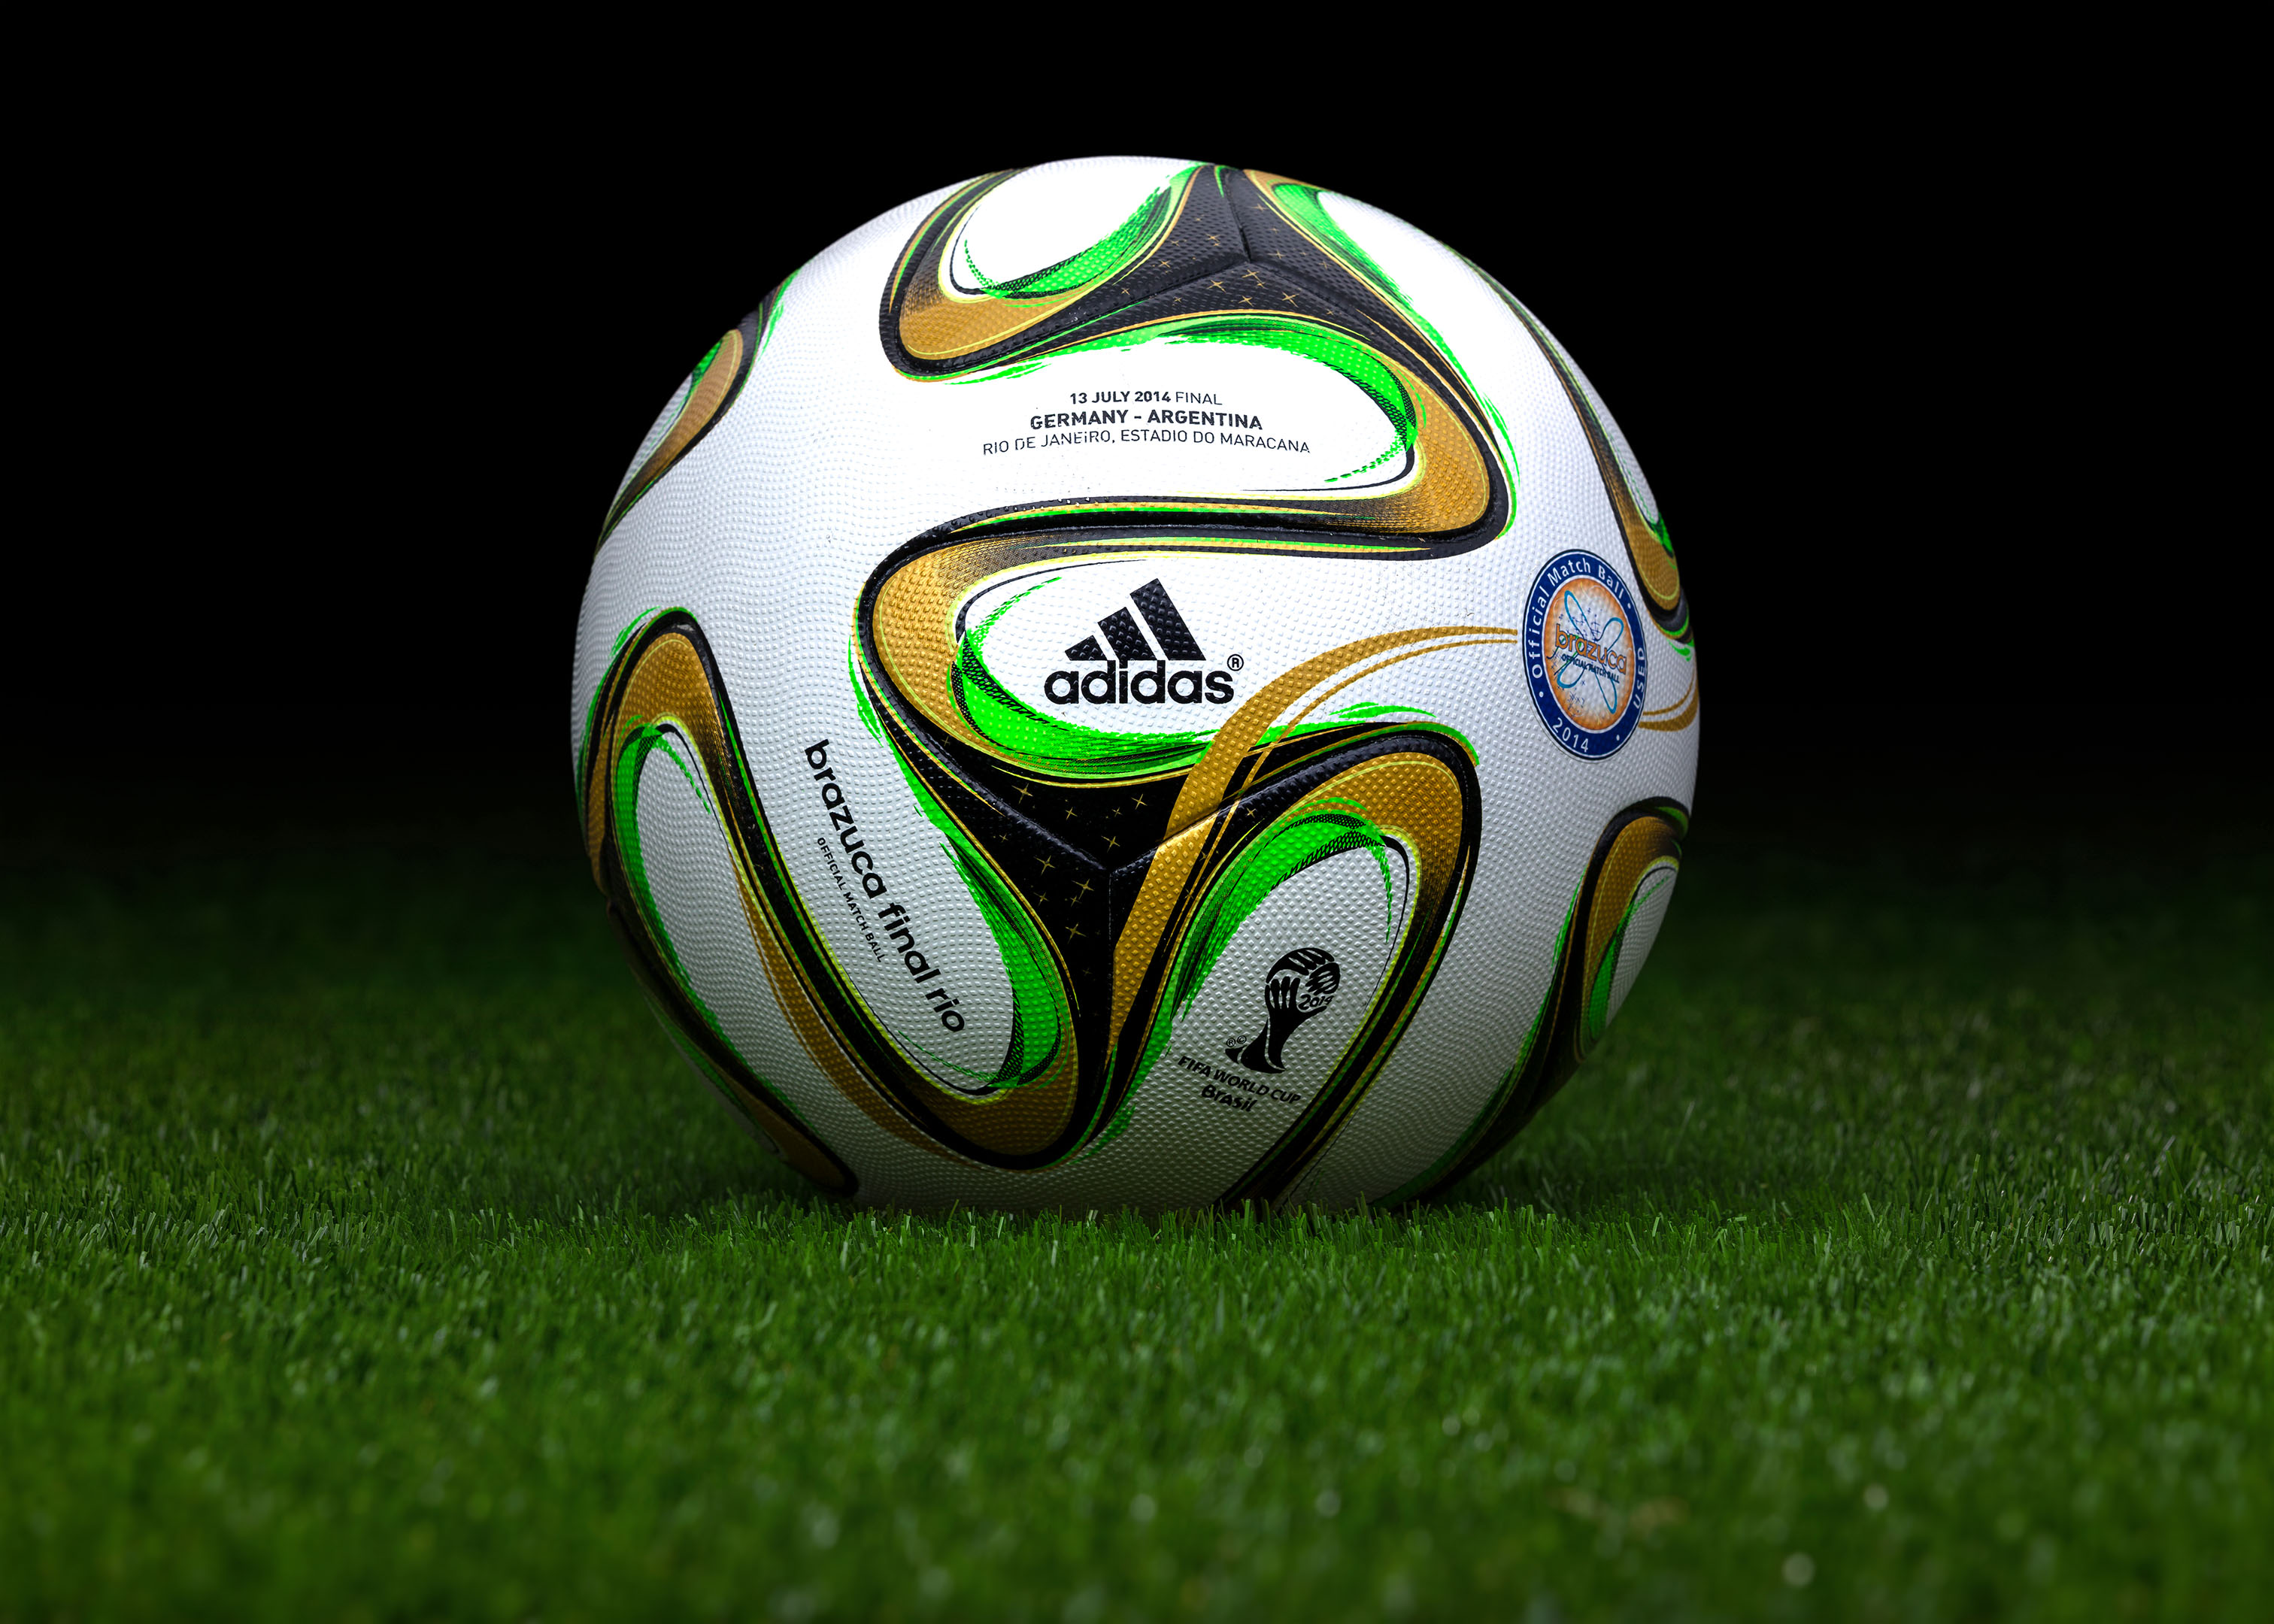 94b44365082 Made in China match ball (game used) FIFA World Cup 2014 Brazil ...